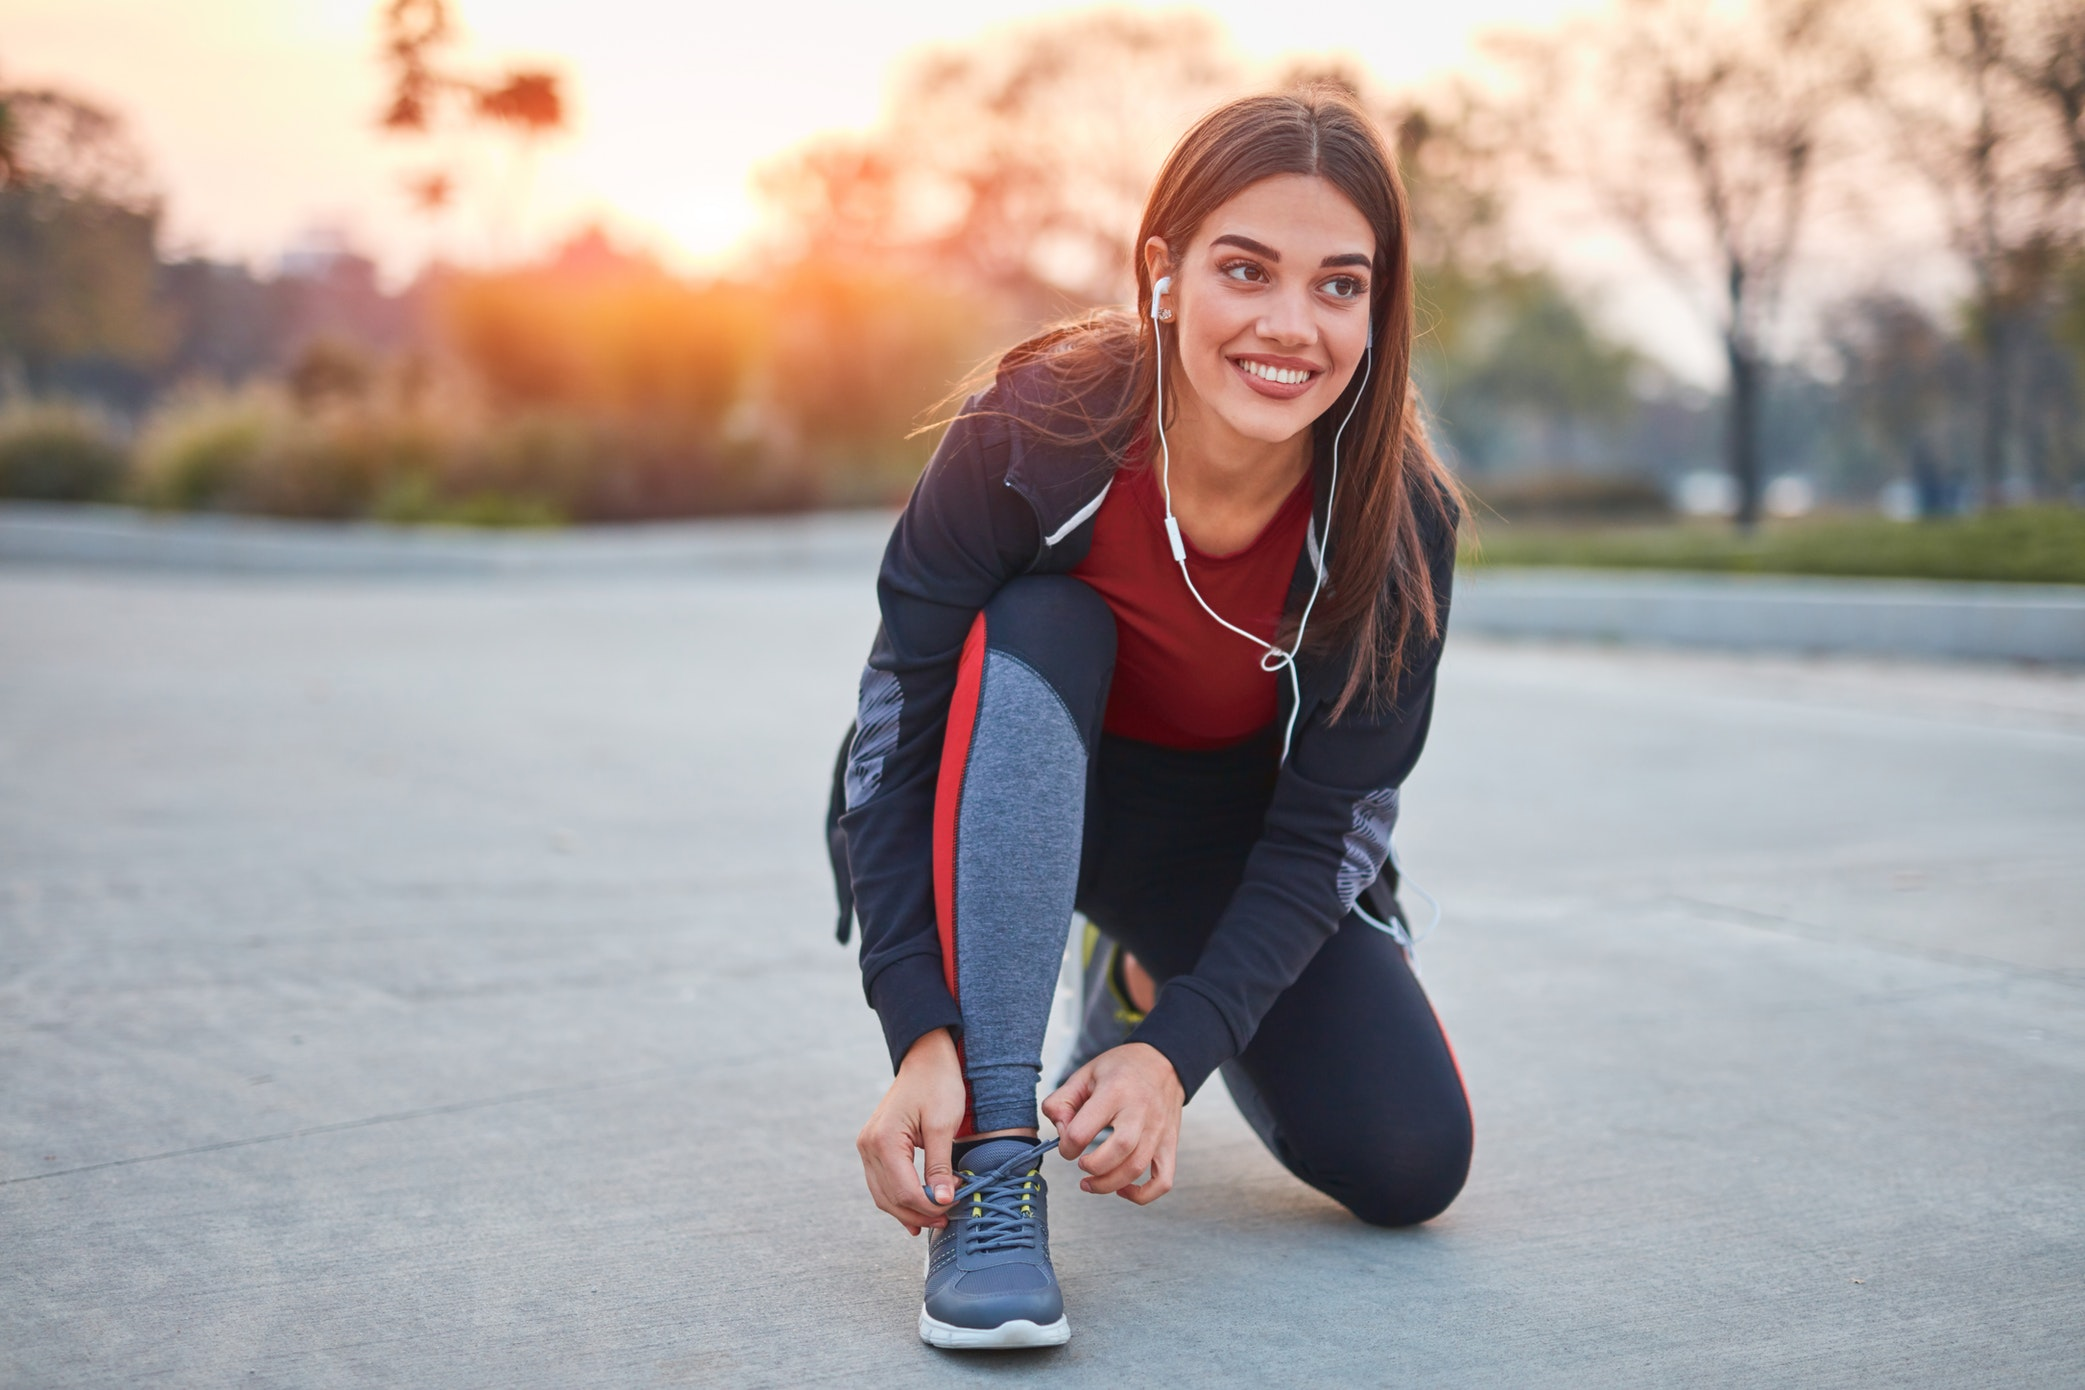 Running, Yoga, and Other Exercises To Help Get Rid of Saddlebags